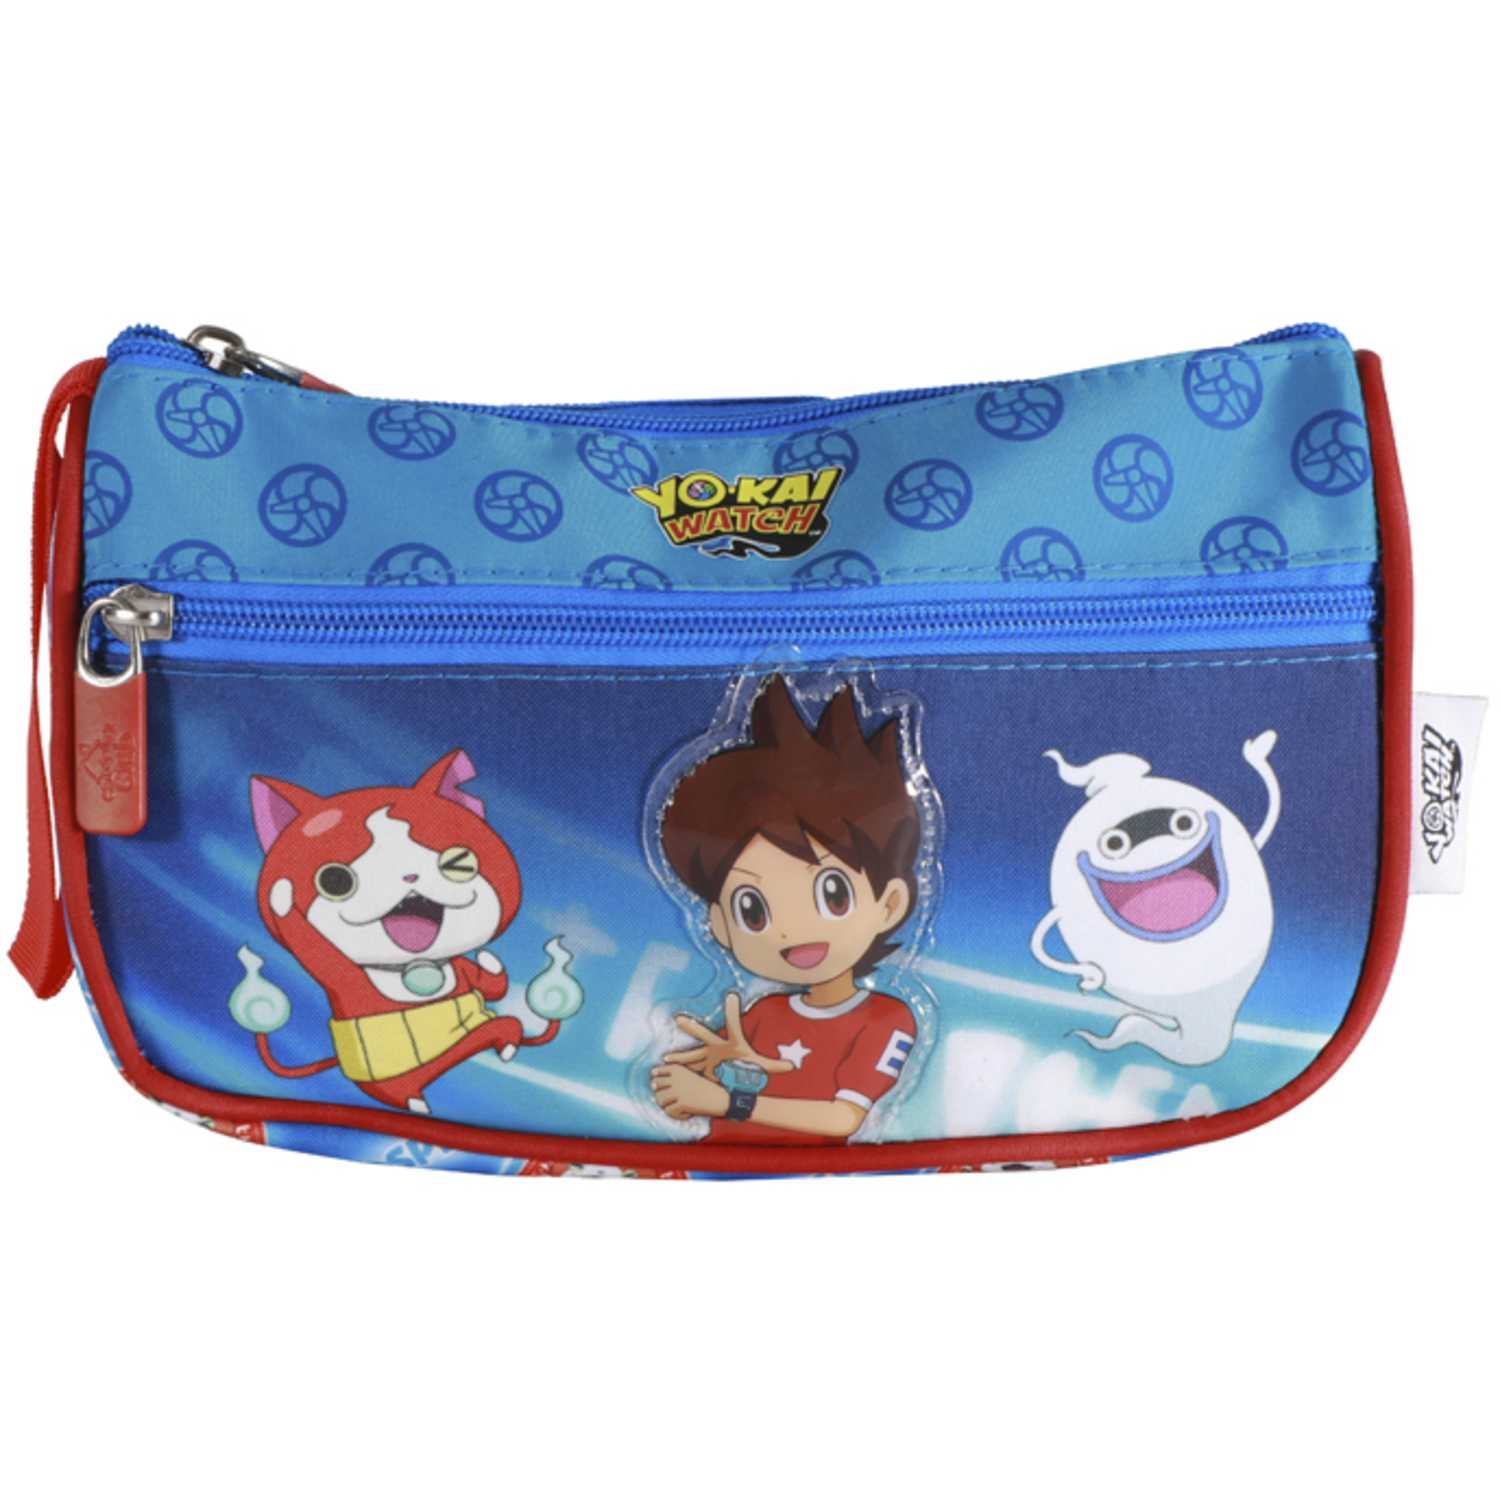 Cartuchera de Niño Yokai Watch Azul cartuchera yokai watch